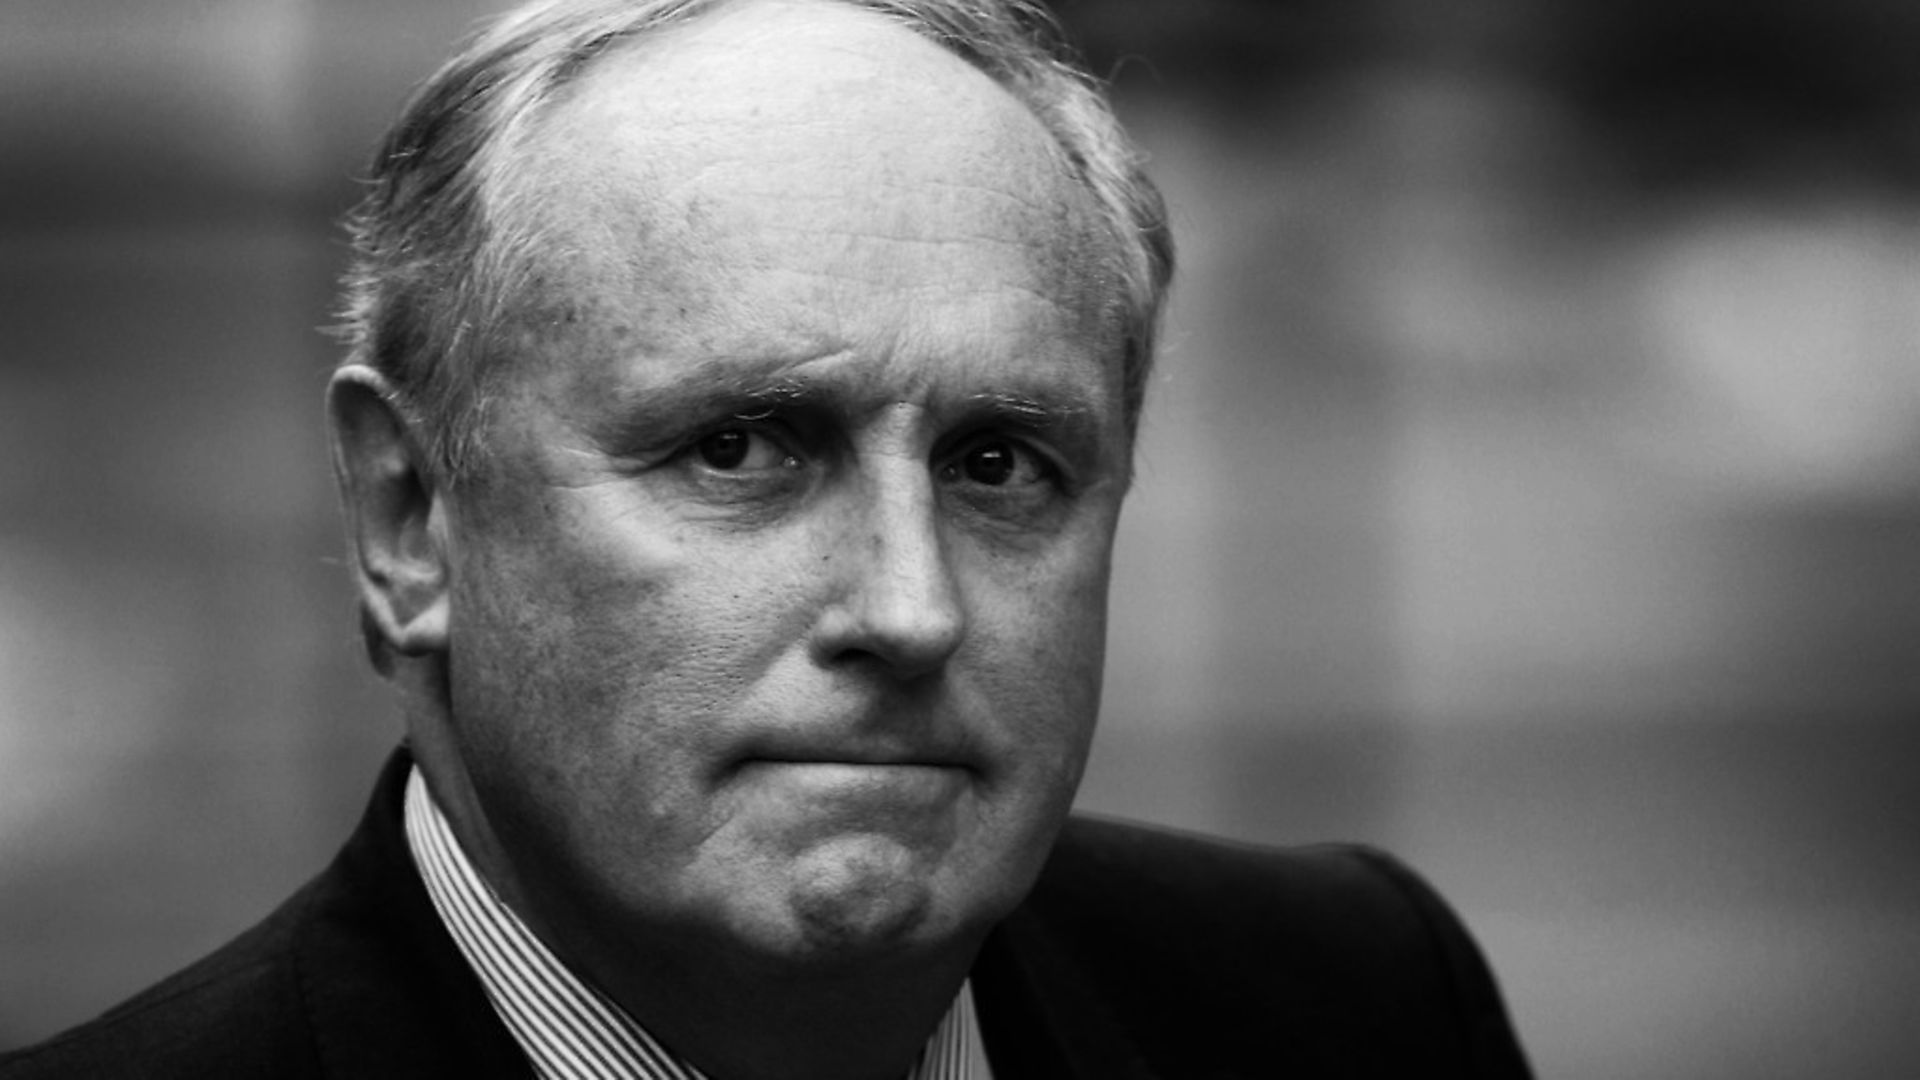 Paul Dacre, former editor of The Daily Mail, arrives to give evidence to the Leveson Inquiry.  (Photo by Peter Macdiarmid/Getty Images) - Credit: Getty Images